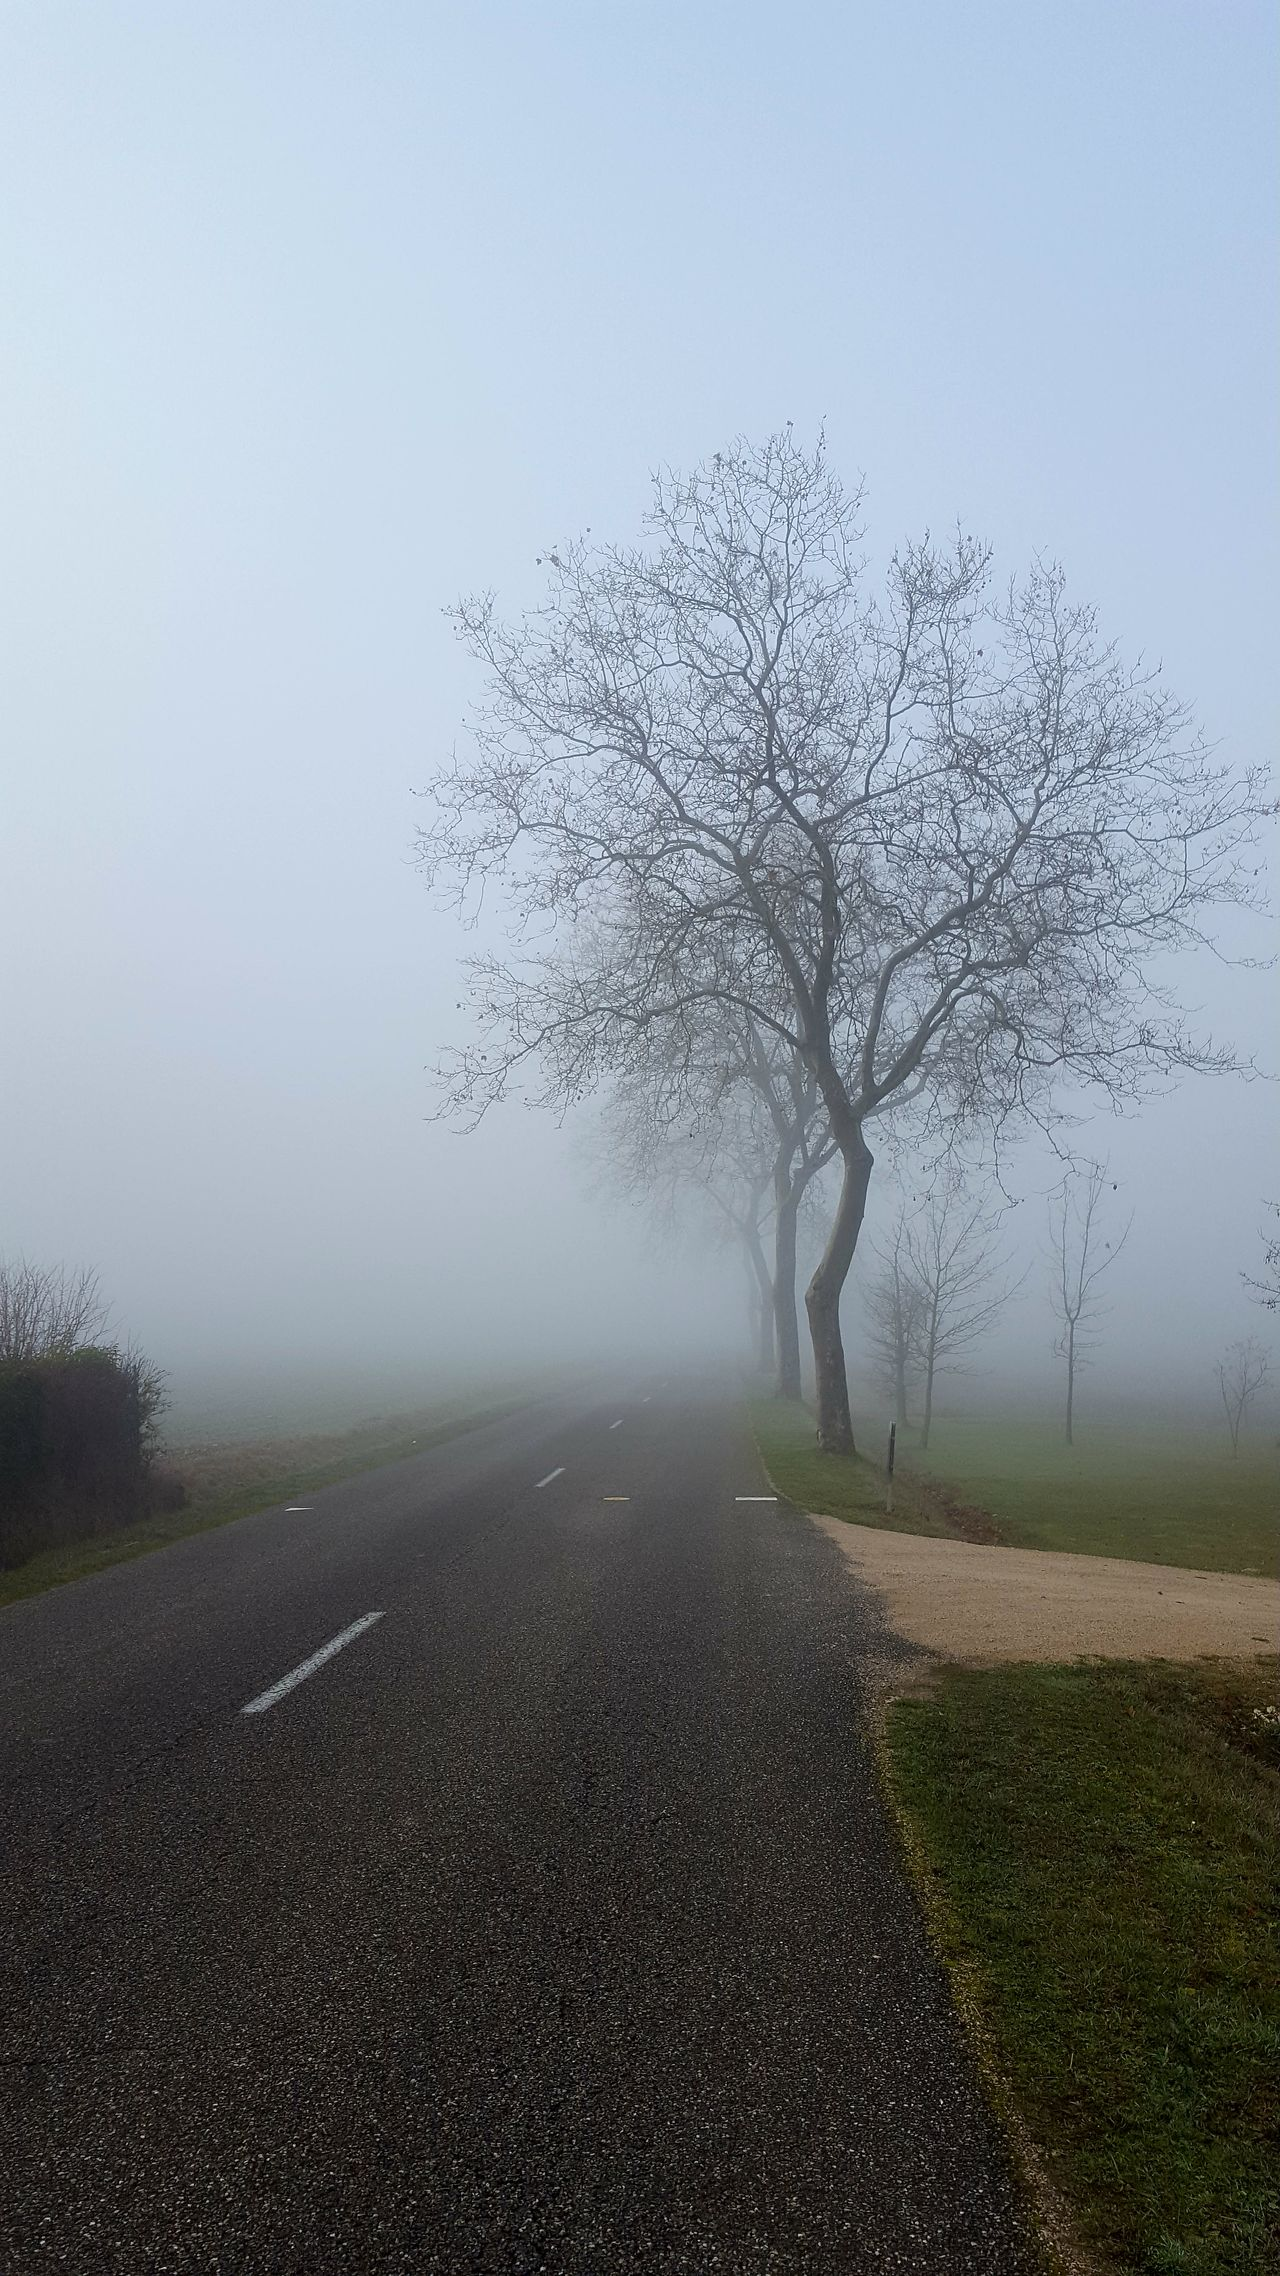 Road To Nowhere Fog Nature Tree Rain Day Beauty In Nature Outdoors Sky No People Water Focus On Foreground My Point Of View Galaxys6 Crossroads The Week On EyeEem